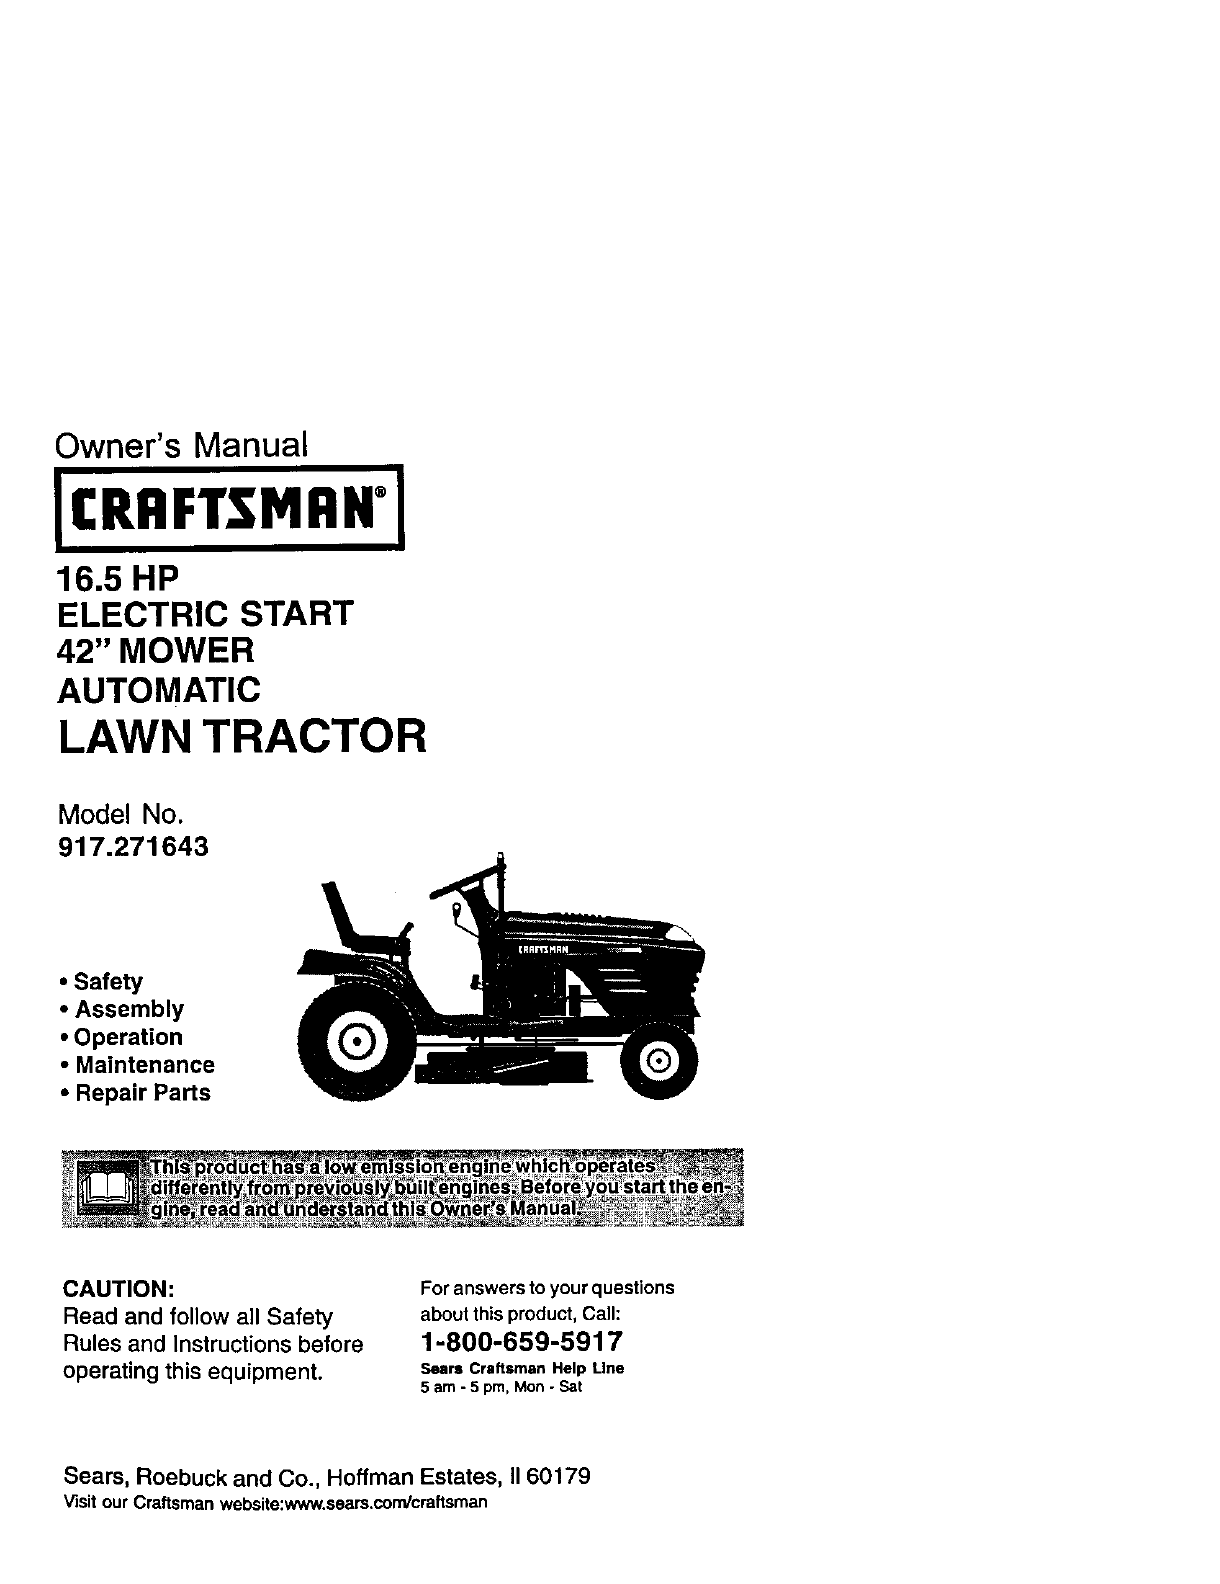 Craftsman 917271643 User Manual LAWN TRACTOR Manuals And Guides L0104165